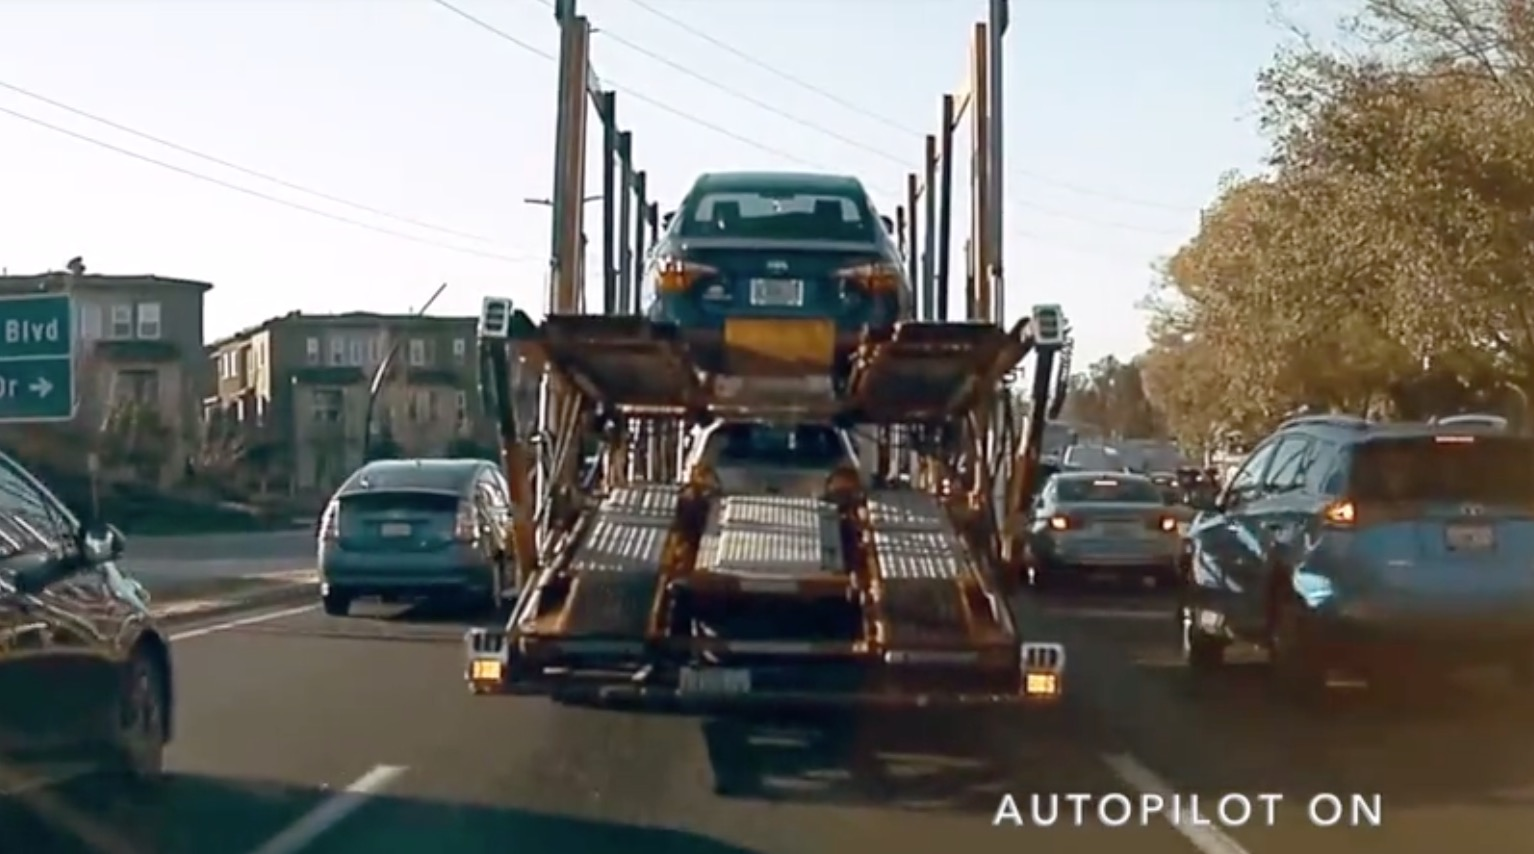 Tesla On Autopilot Goes Haywire, Drives Into Stopped Truck In Front Of It